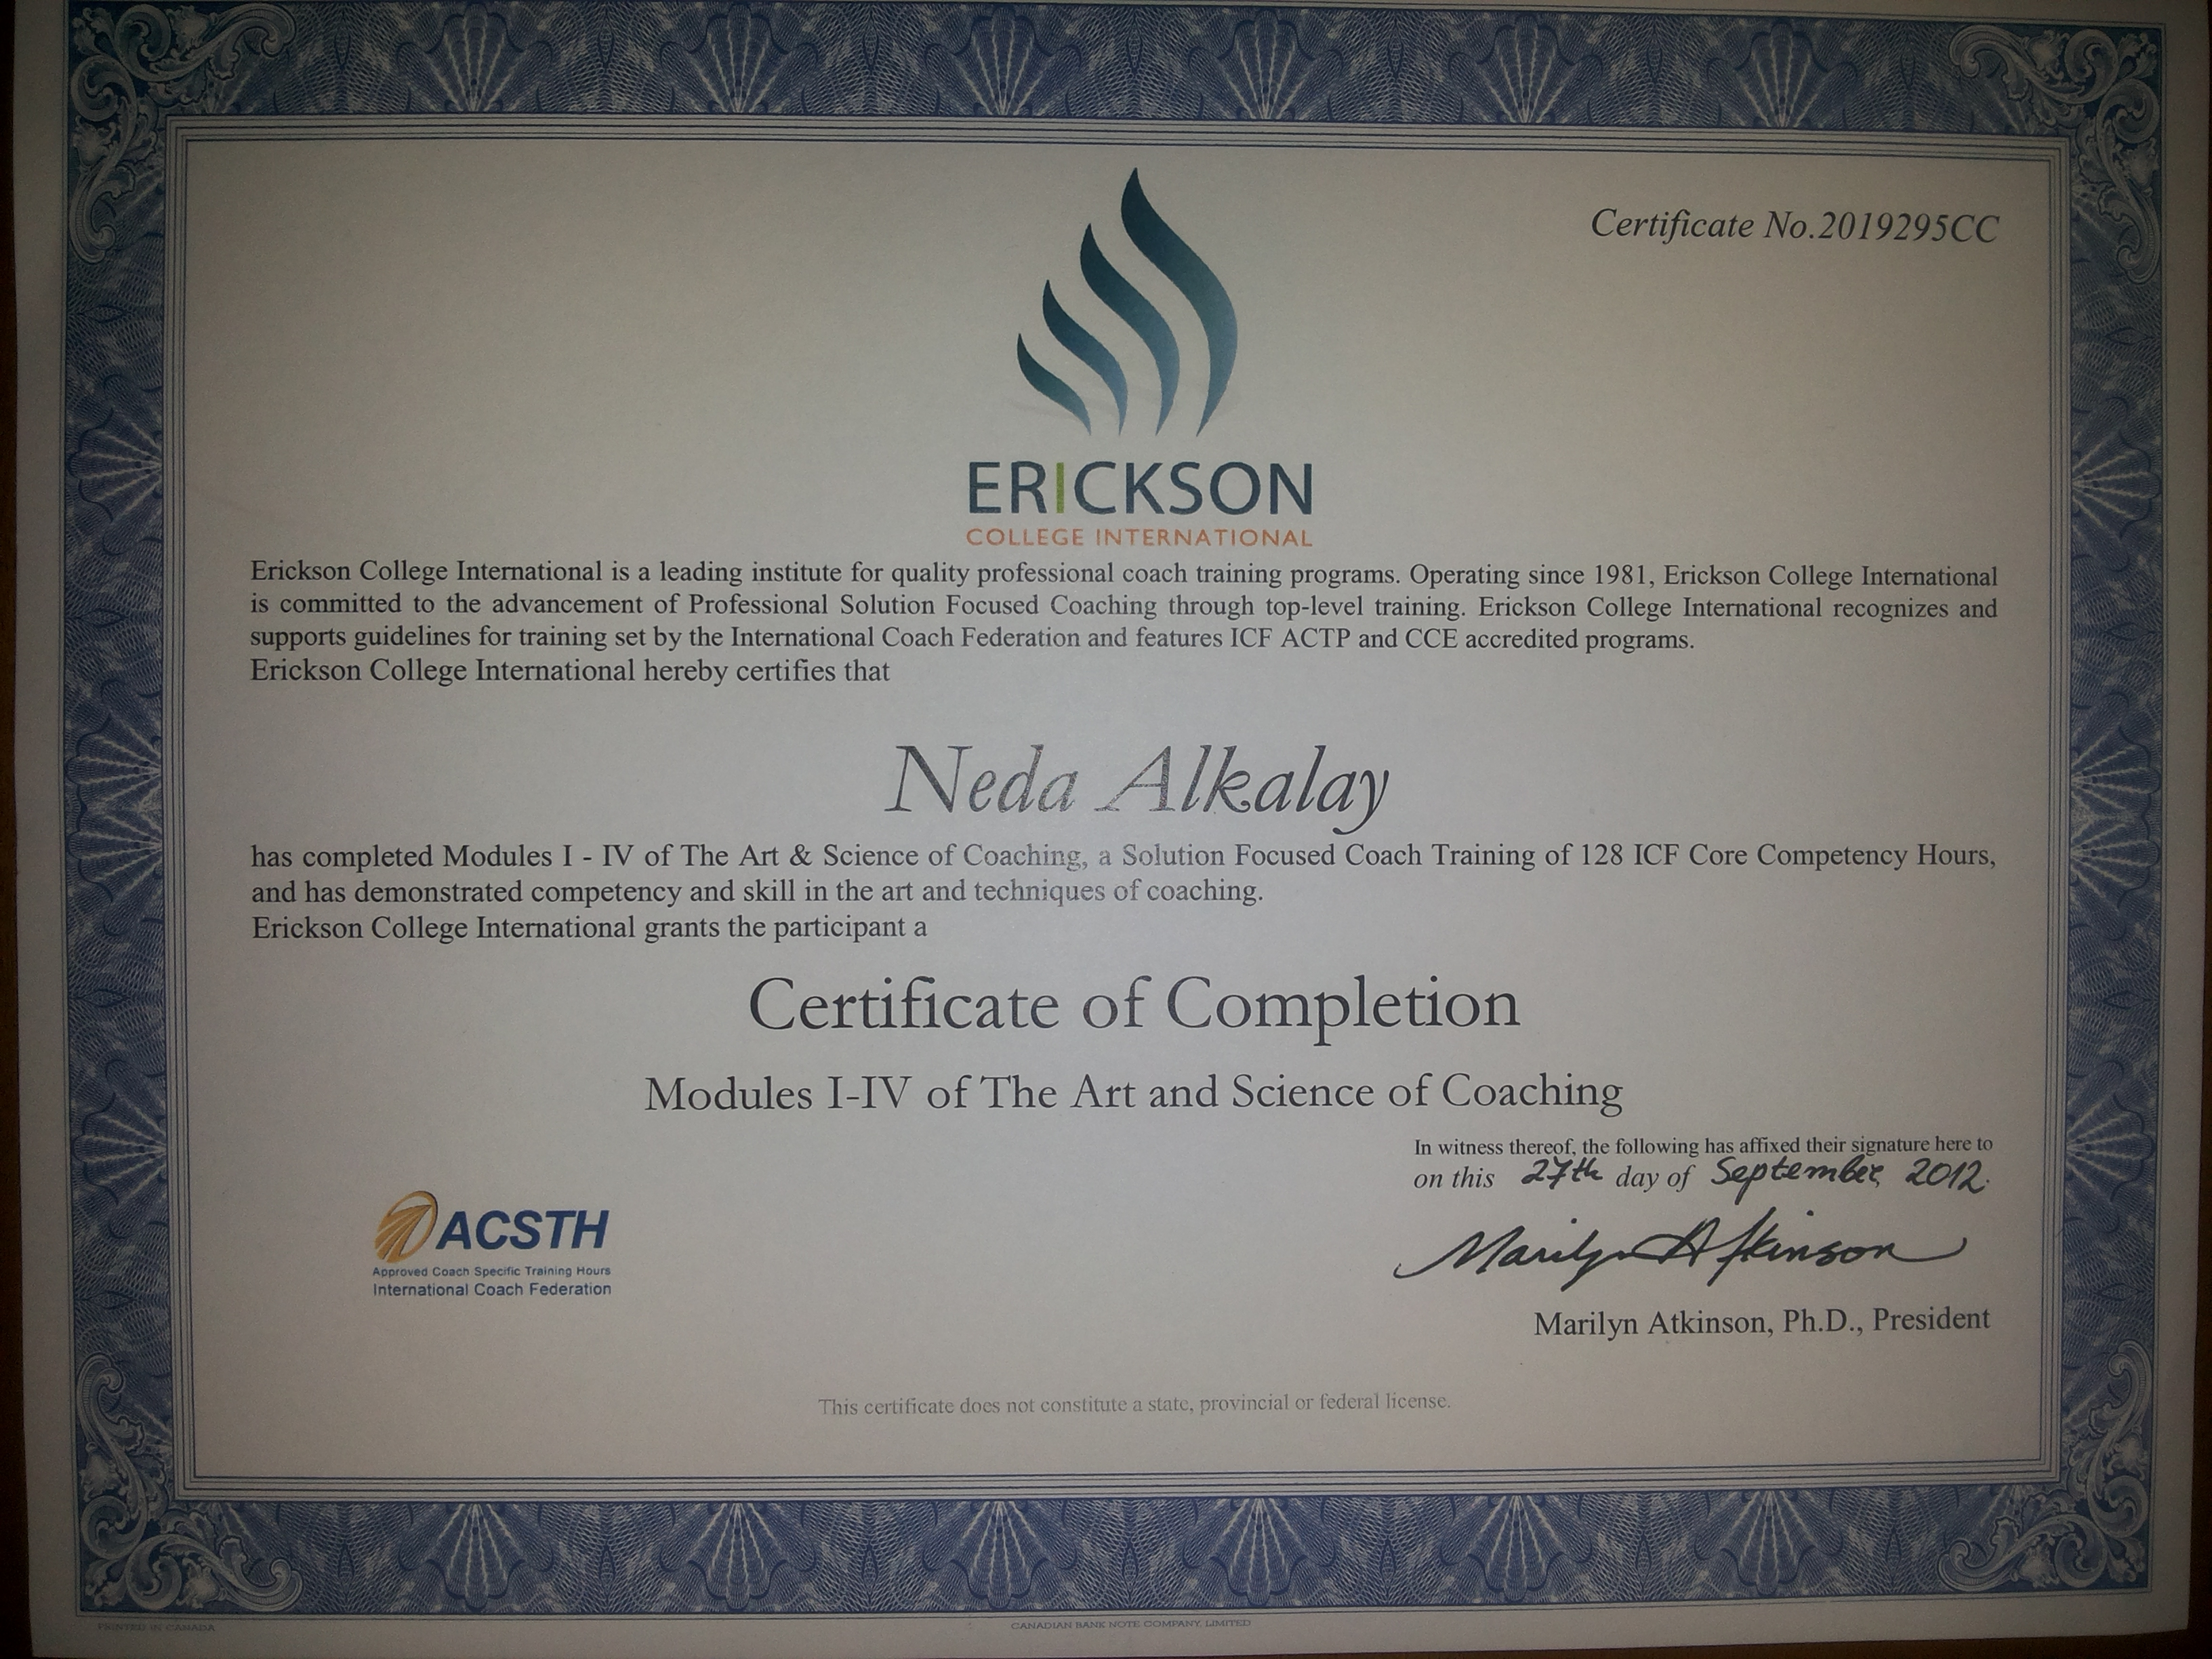 Neda Alkalay Erickson College Certificate of Completion